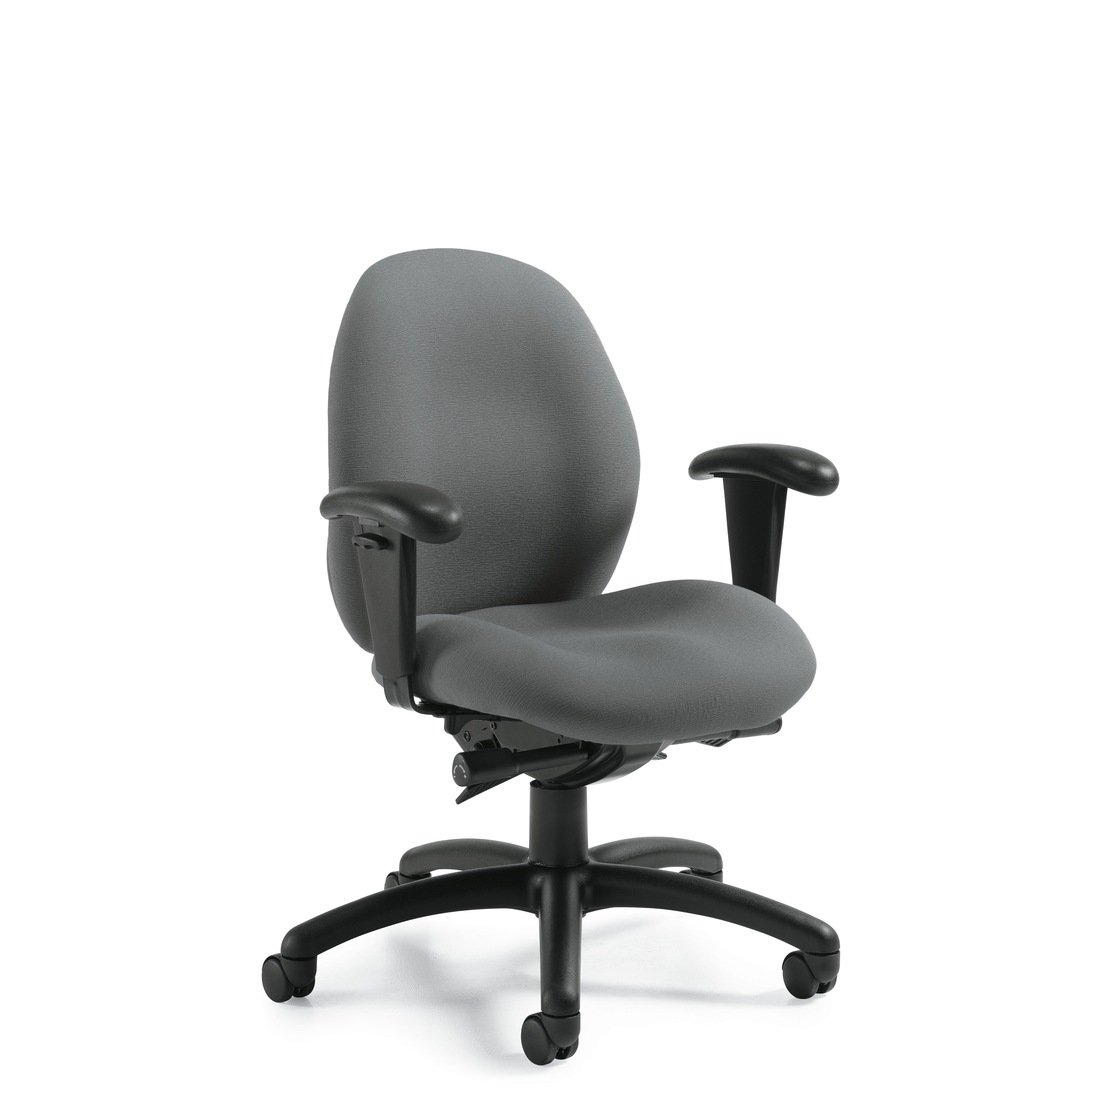 Malaga low back synchro-tilter chair, model 3140-0. This chair has been placed on a white background.